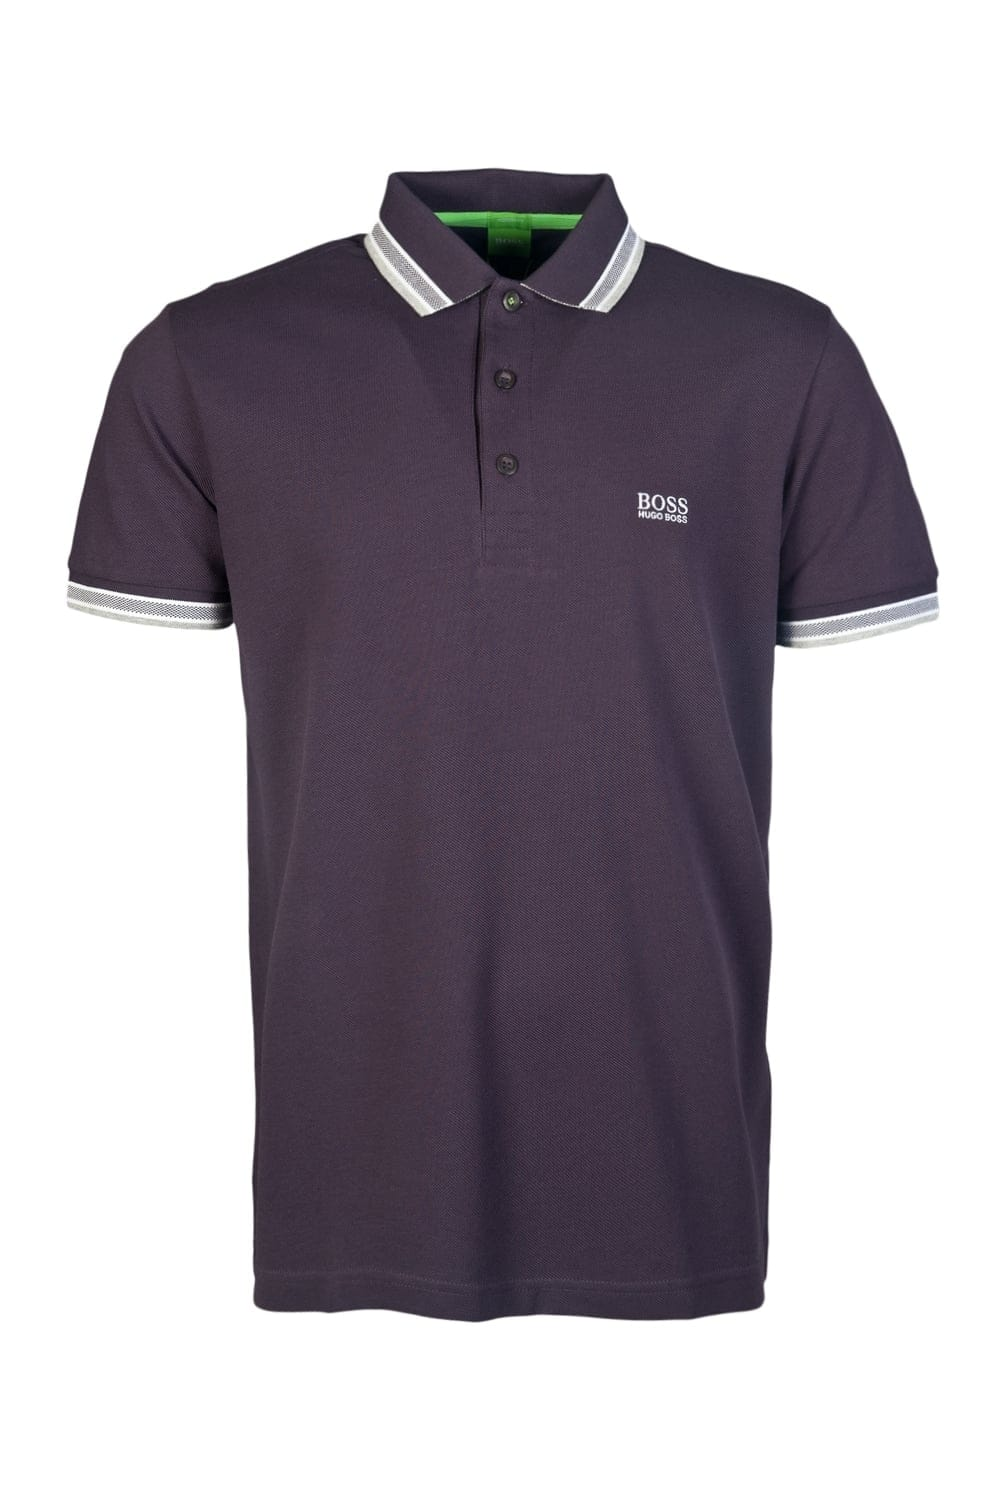 Hugo boss polo shirt paddy 50302557 for Hugo boss green polo shirt sale